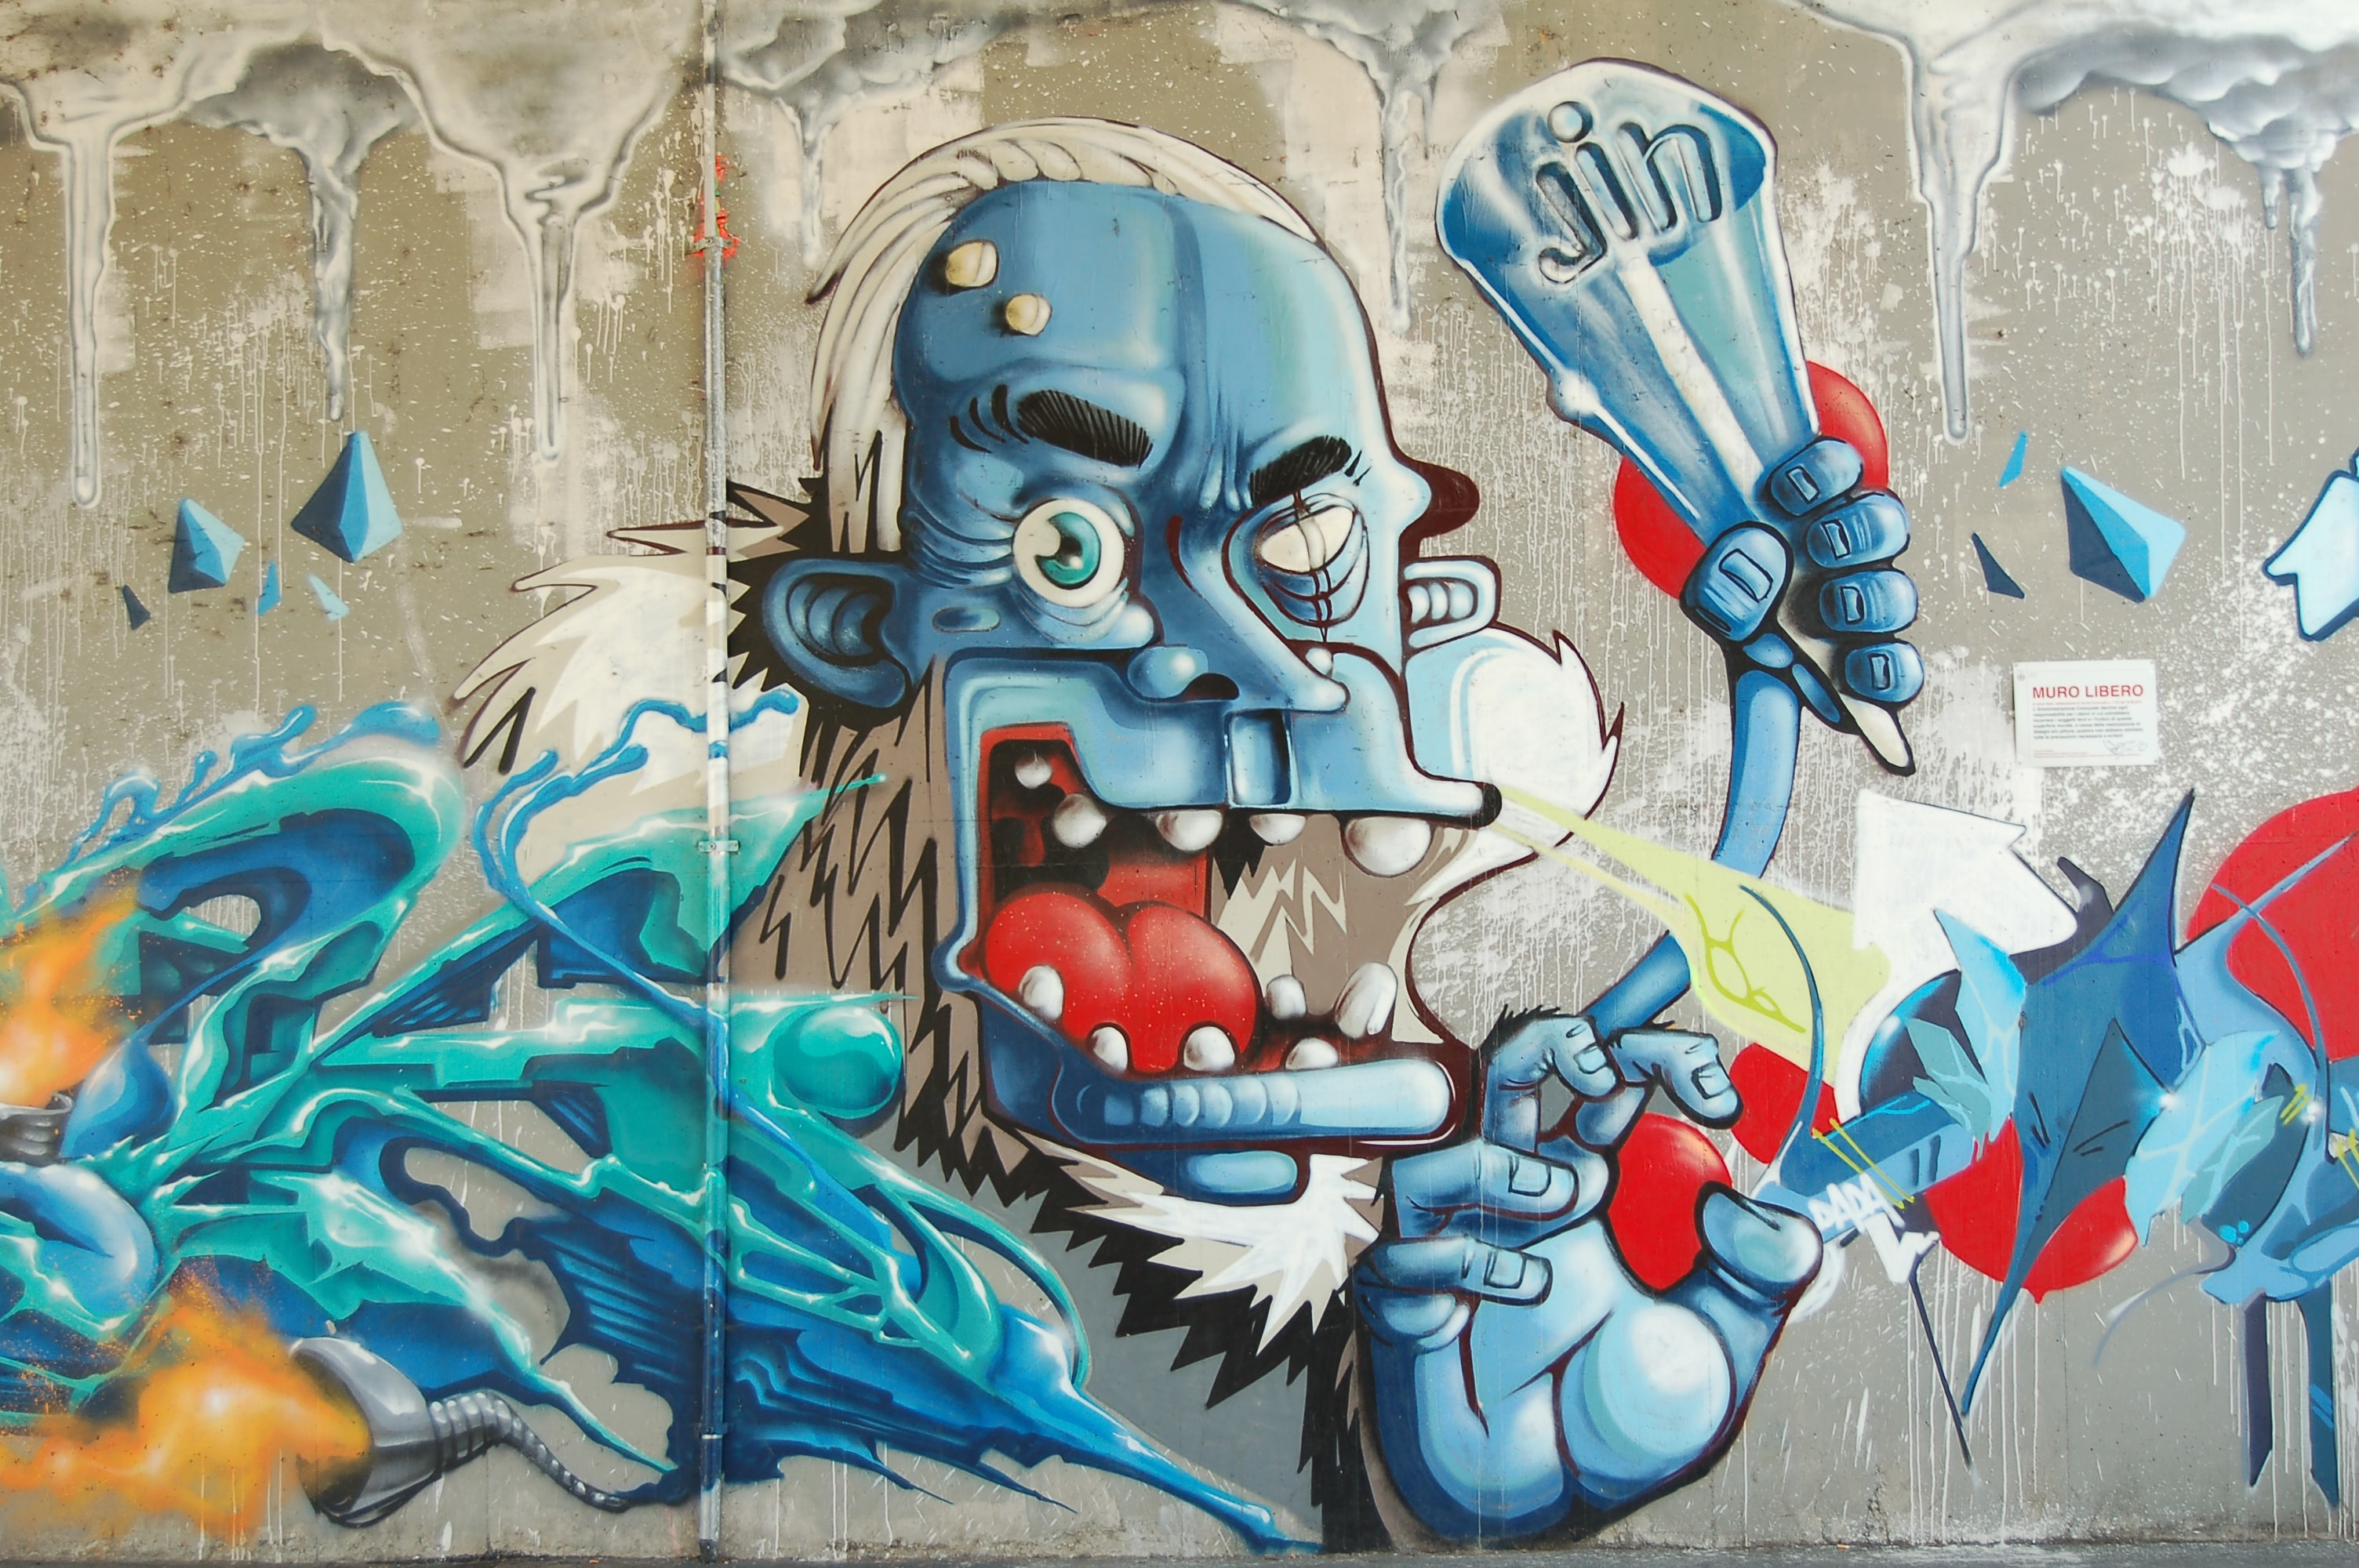 A freaky blue guy holding ice cream, painted on a wall mural.